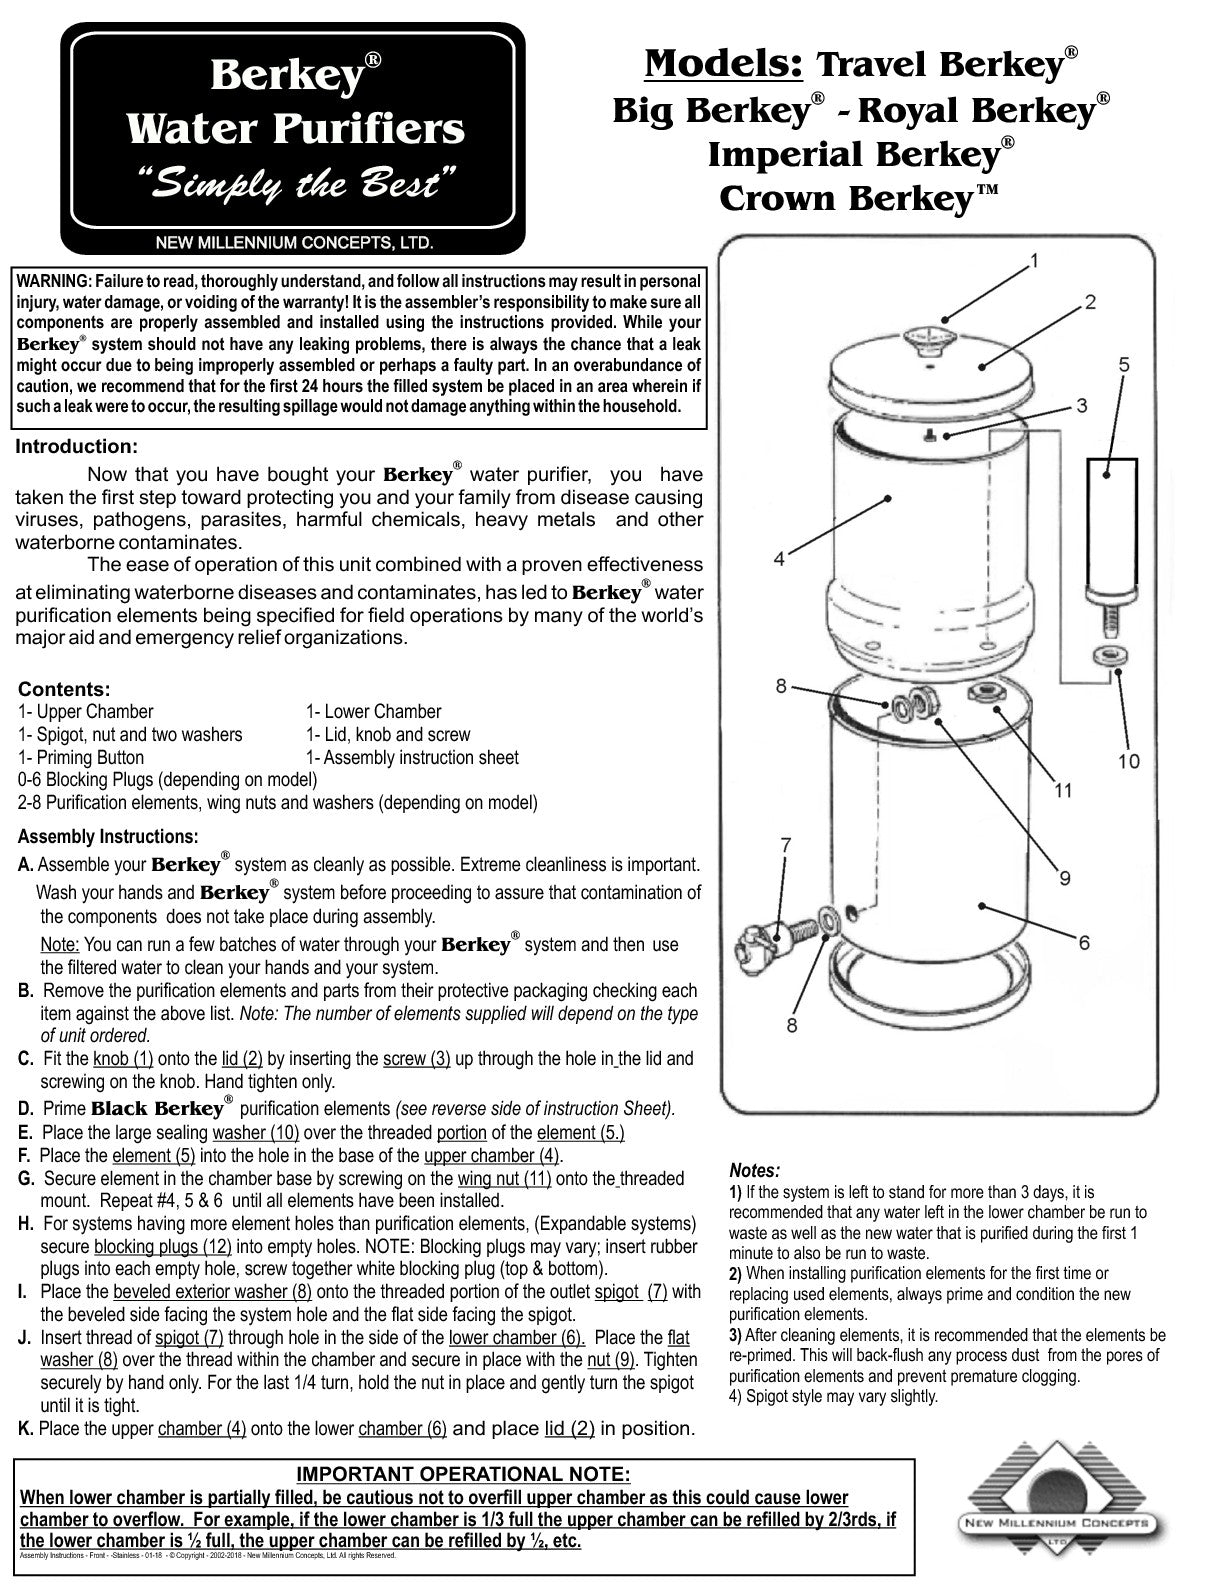 Stainless Steel Berkey Assembly Instructions